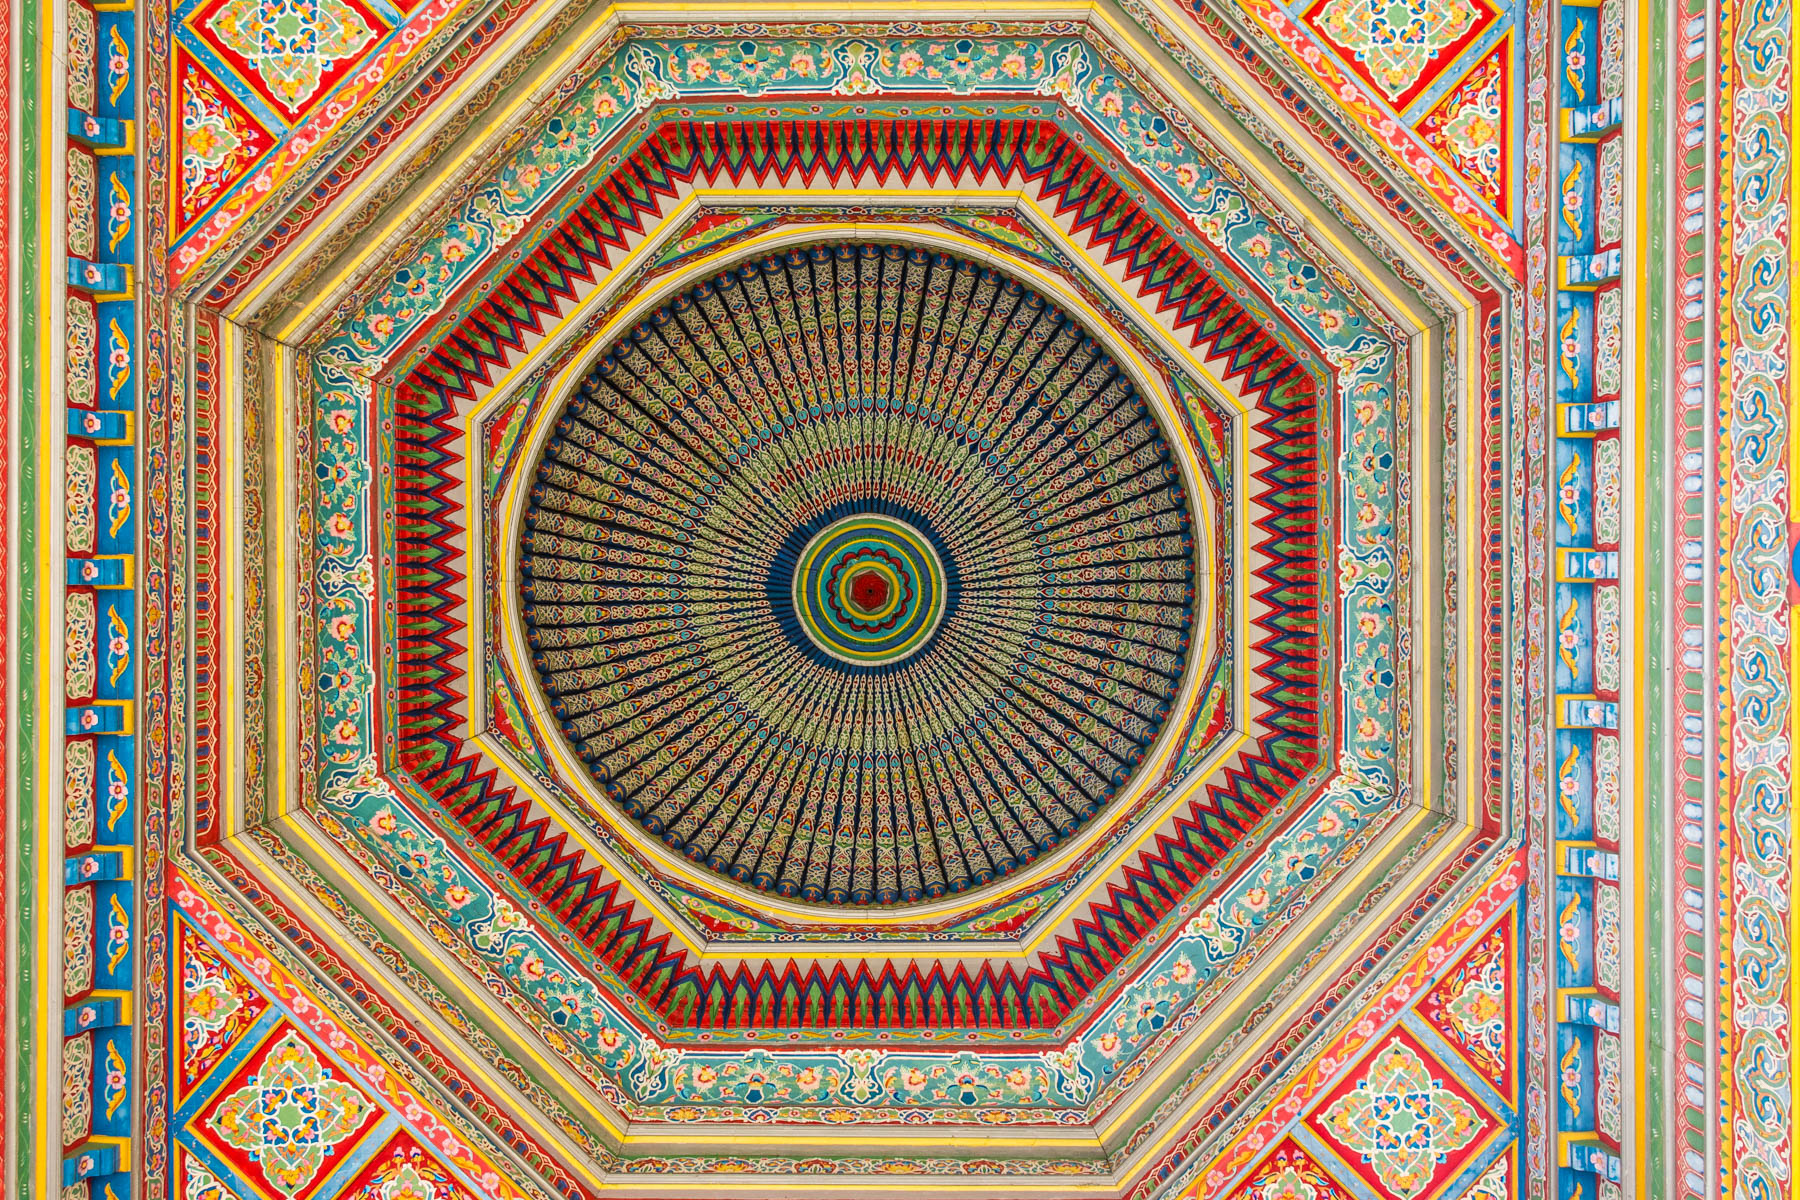 Two week Uzbekistan itinerary - Nameless mosque ceiling in Andijan, Uzbekistan - Lost With Purpose